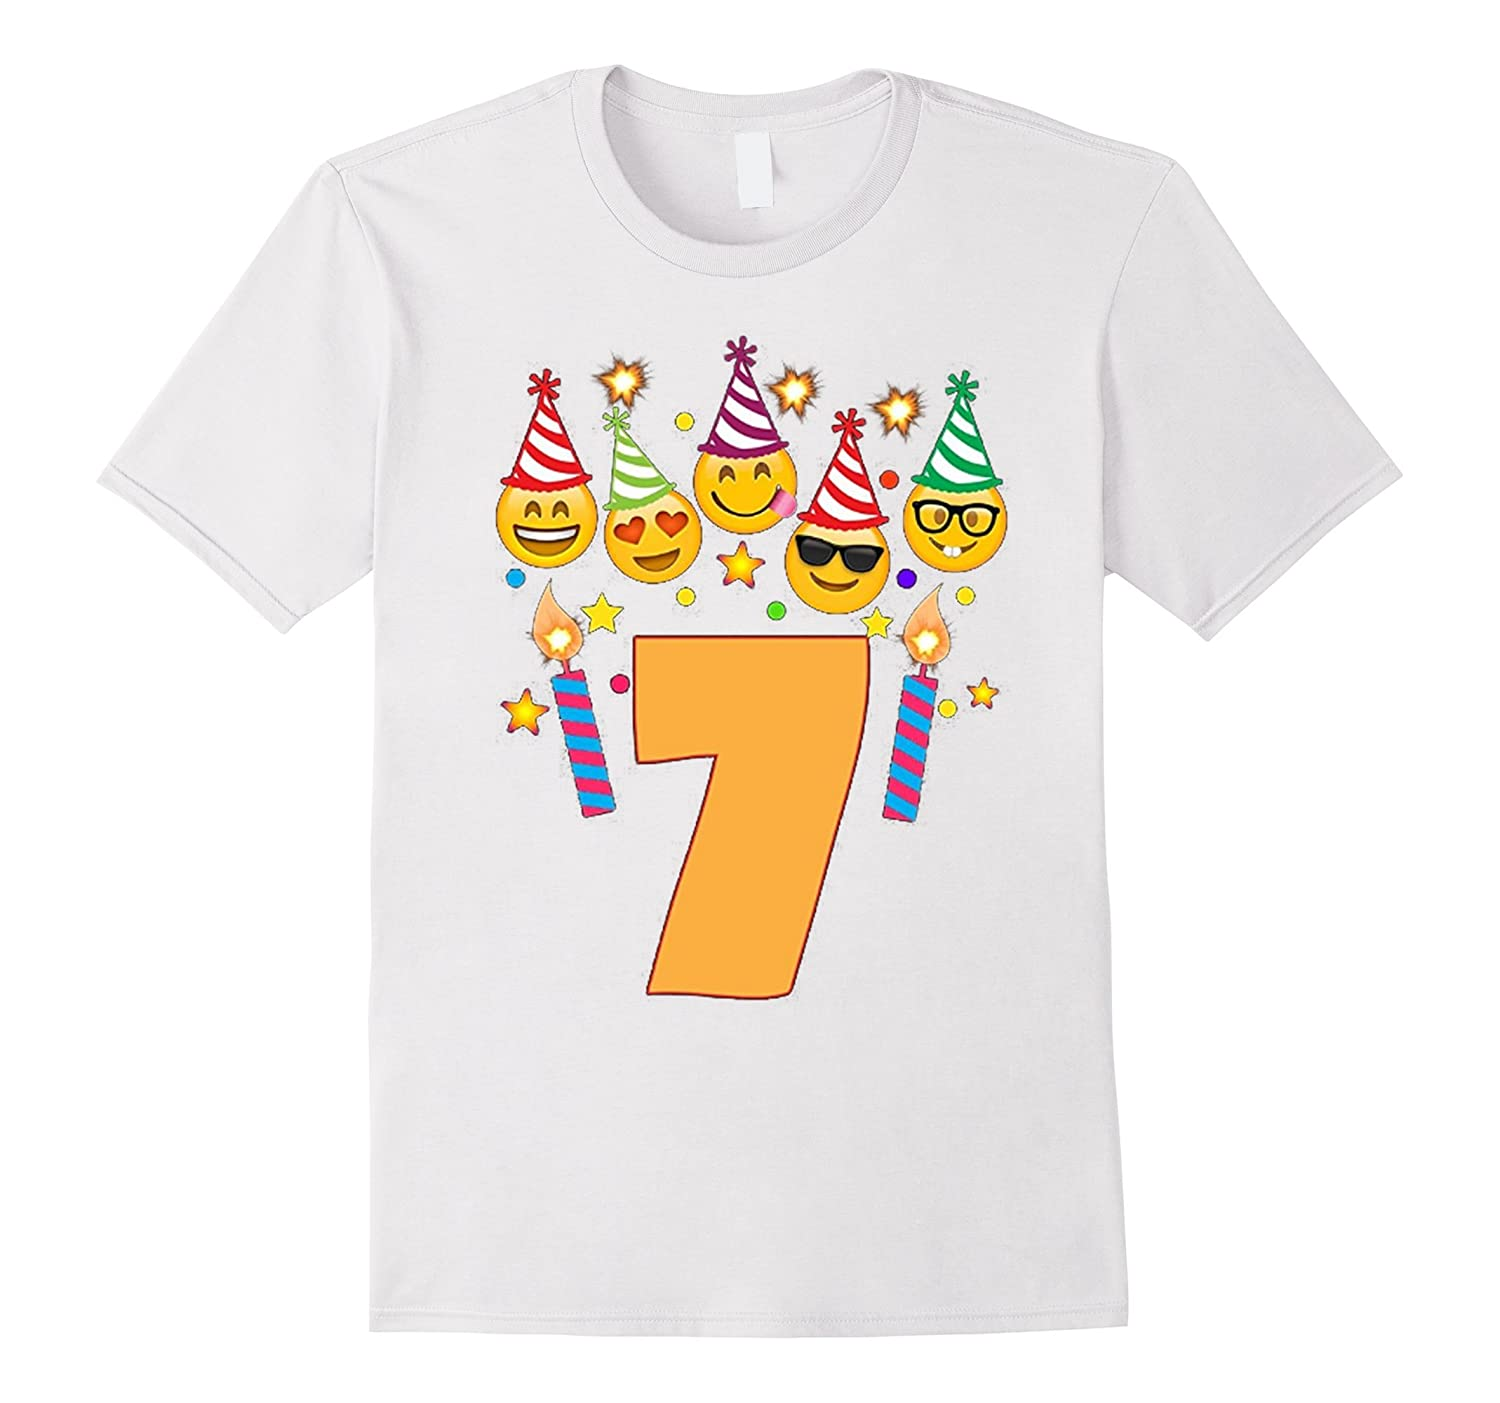 Emoji Birthday Shirt For 7 Seven Year Old Girl Boy Toddler TD